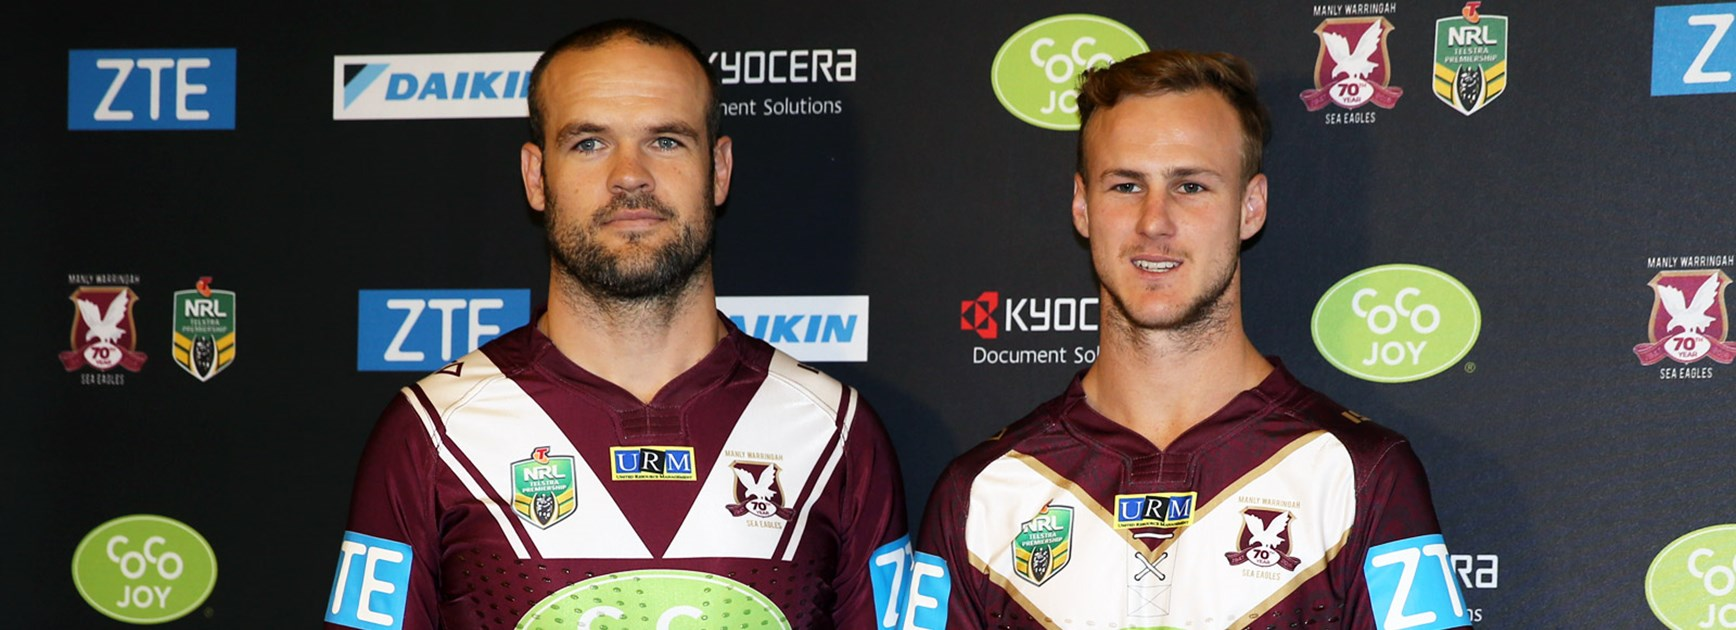 New Manly signing Nate Myles alongside halfback Daly Cherry-Evans in the club's 2016 jersey.